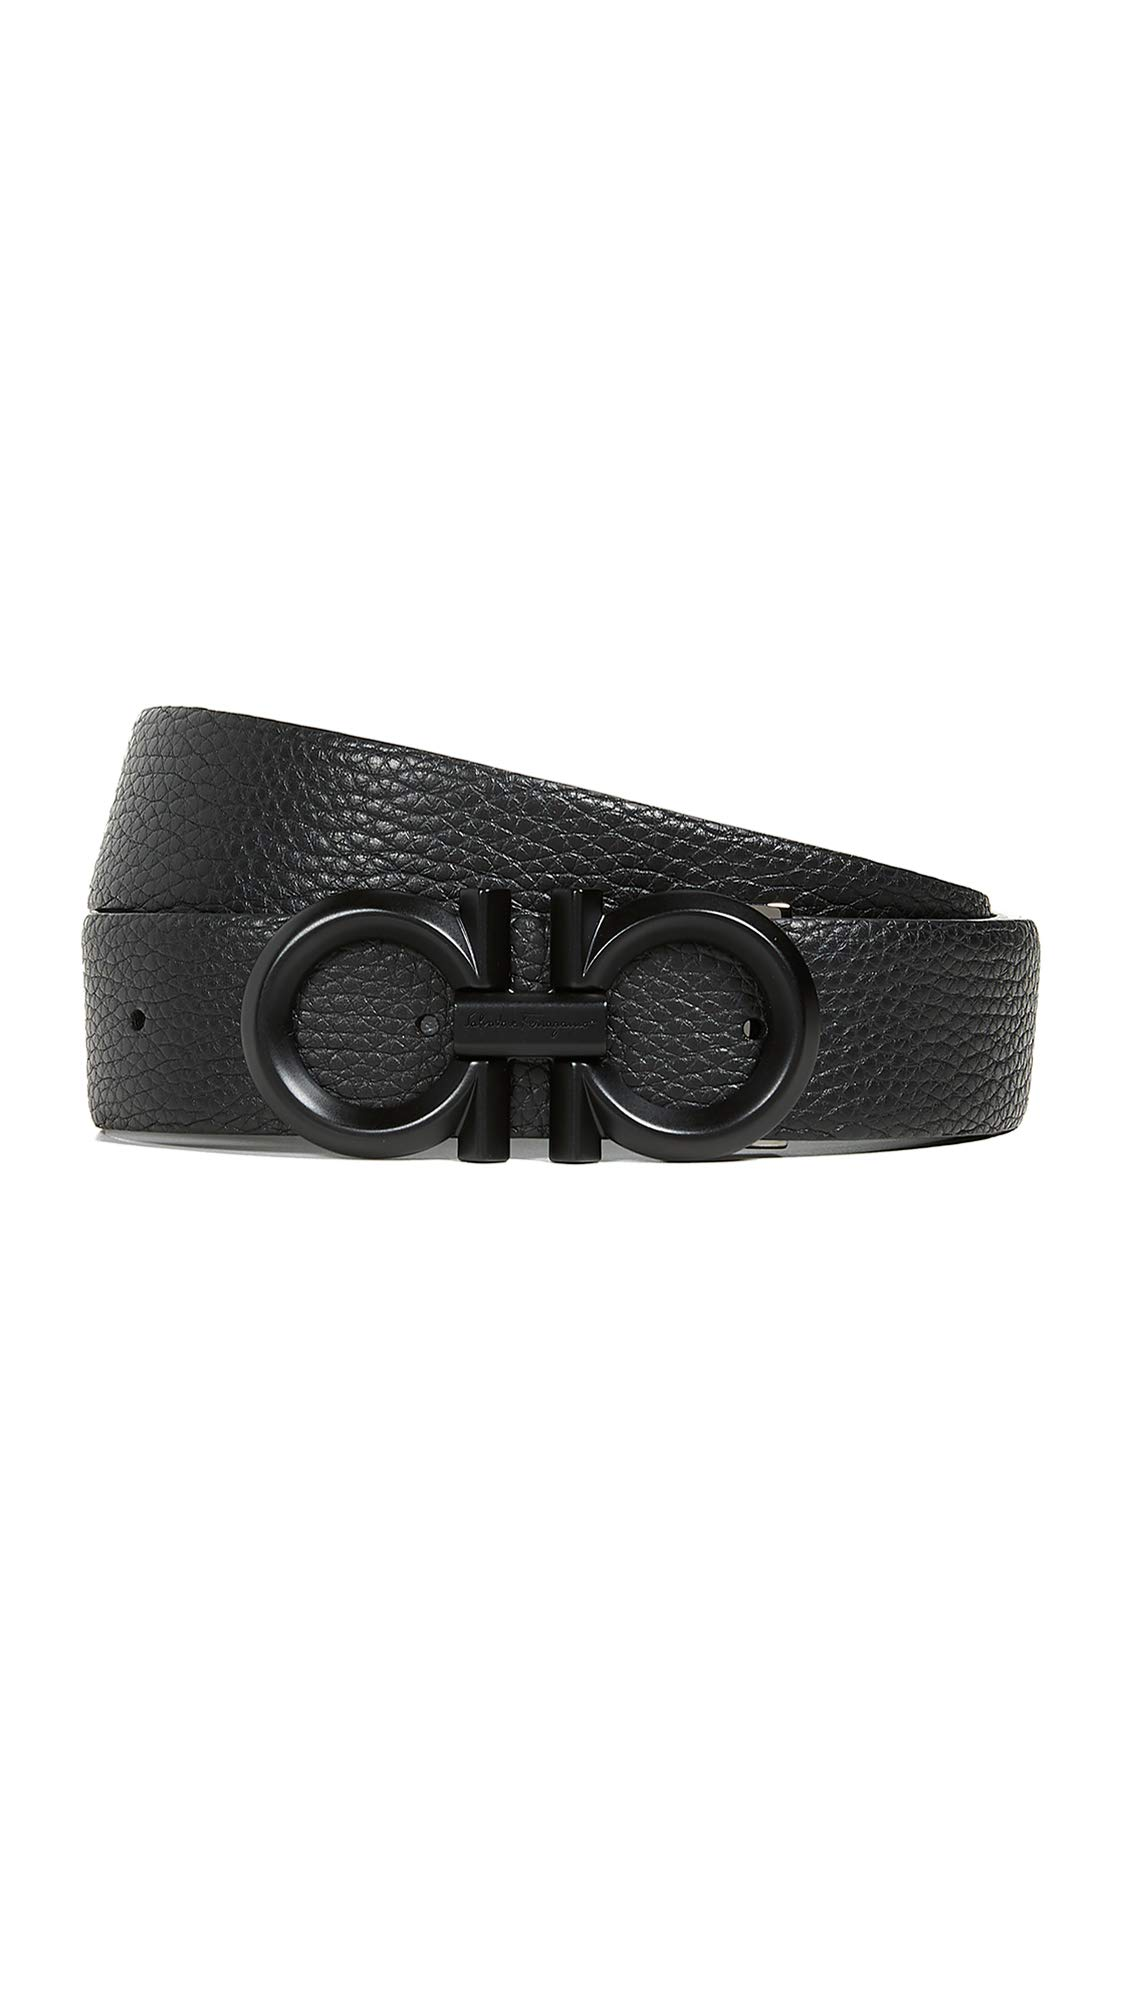 Salvatore Ferragamo Men's Double Gancio Reversible Belt, Black/Asphalt, 32